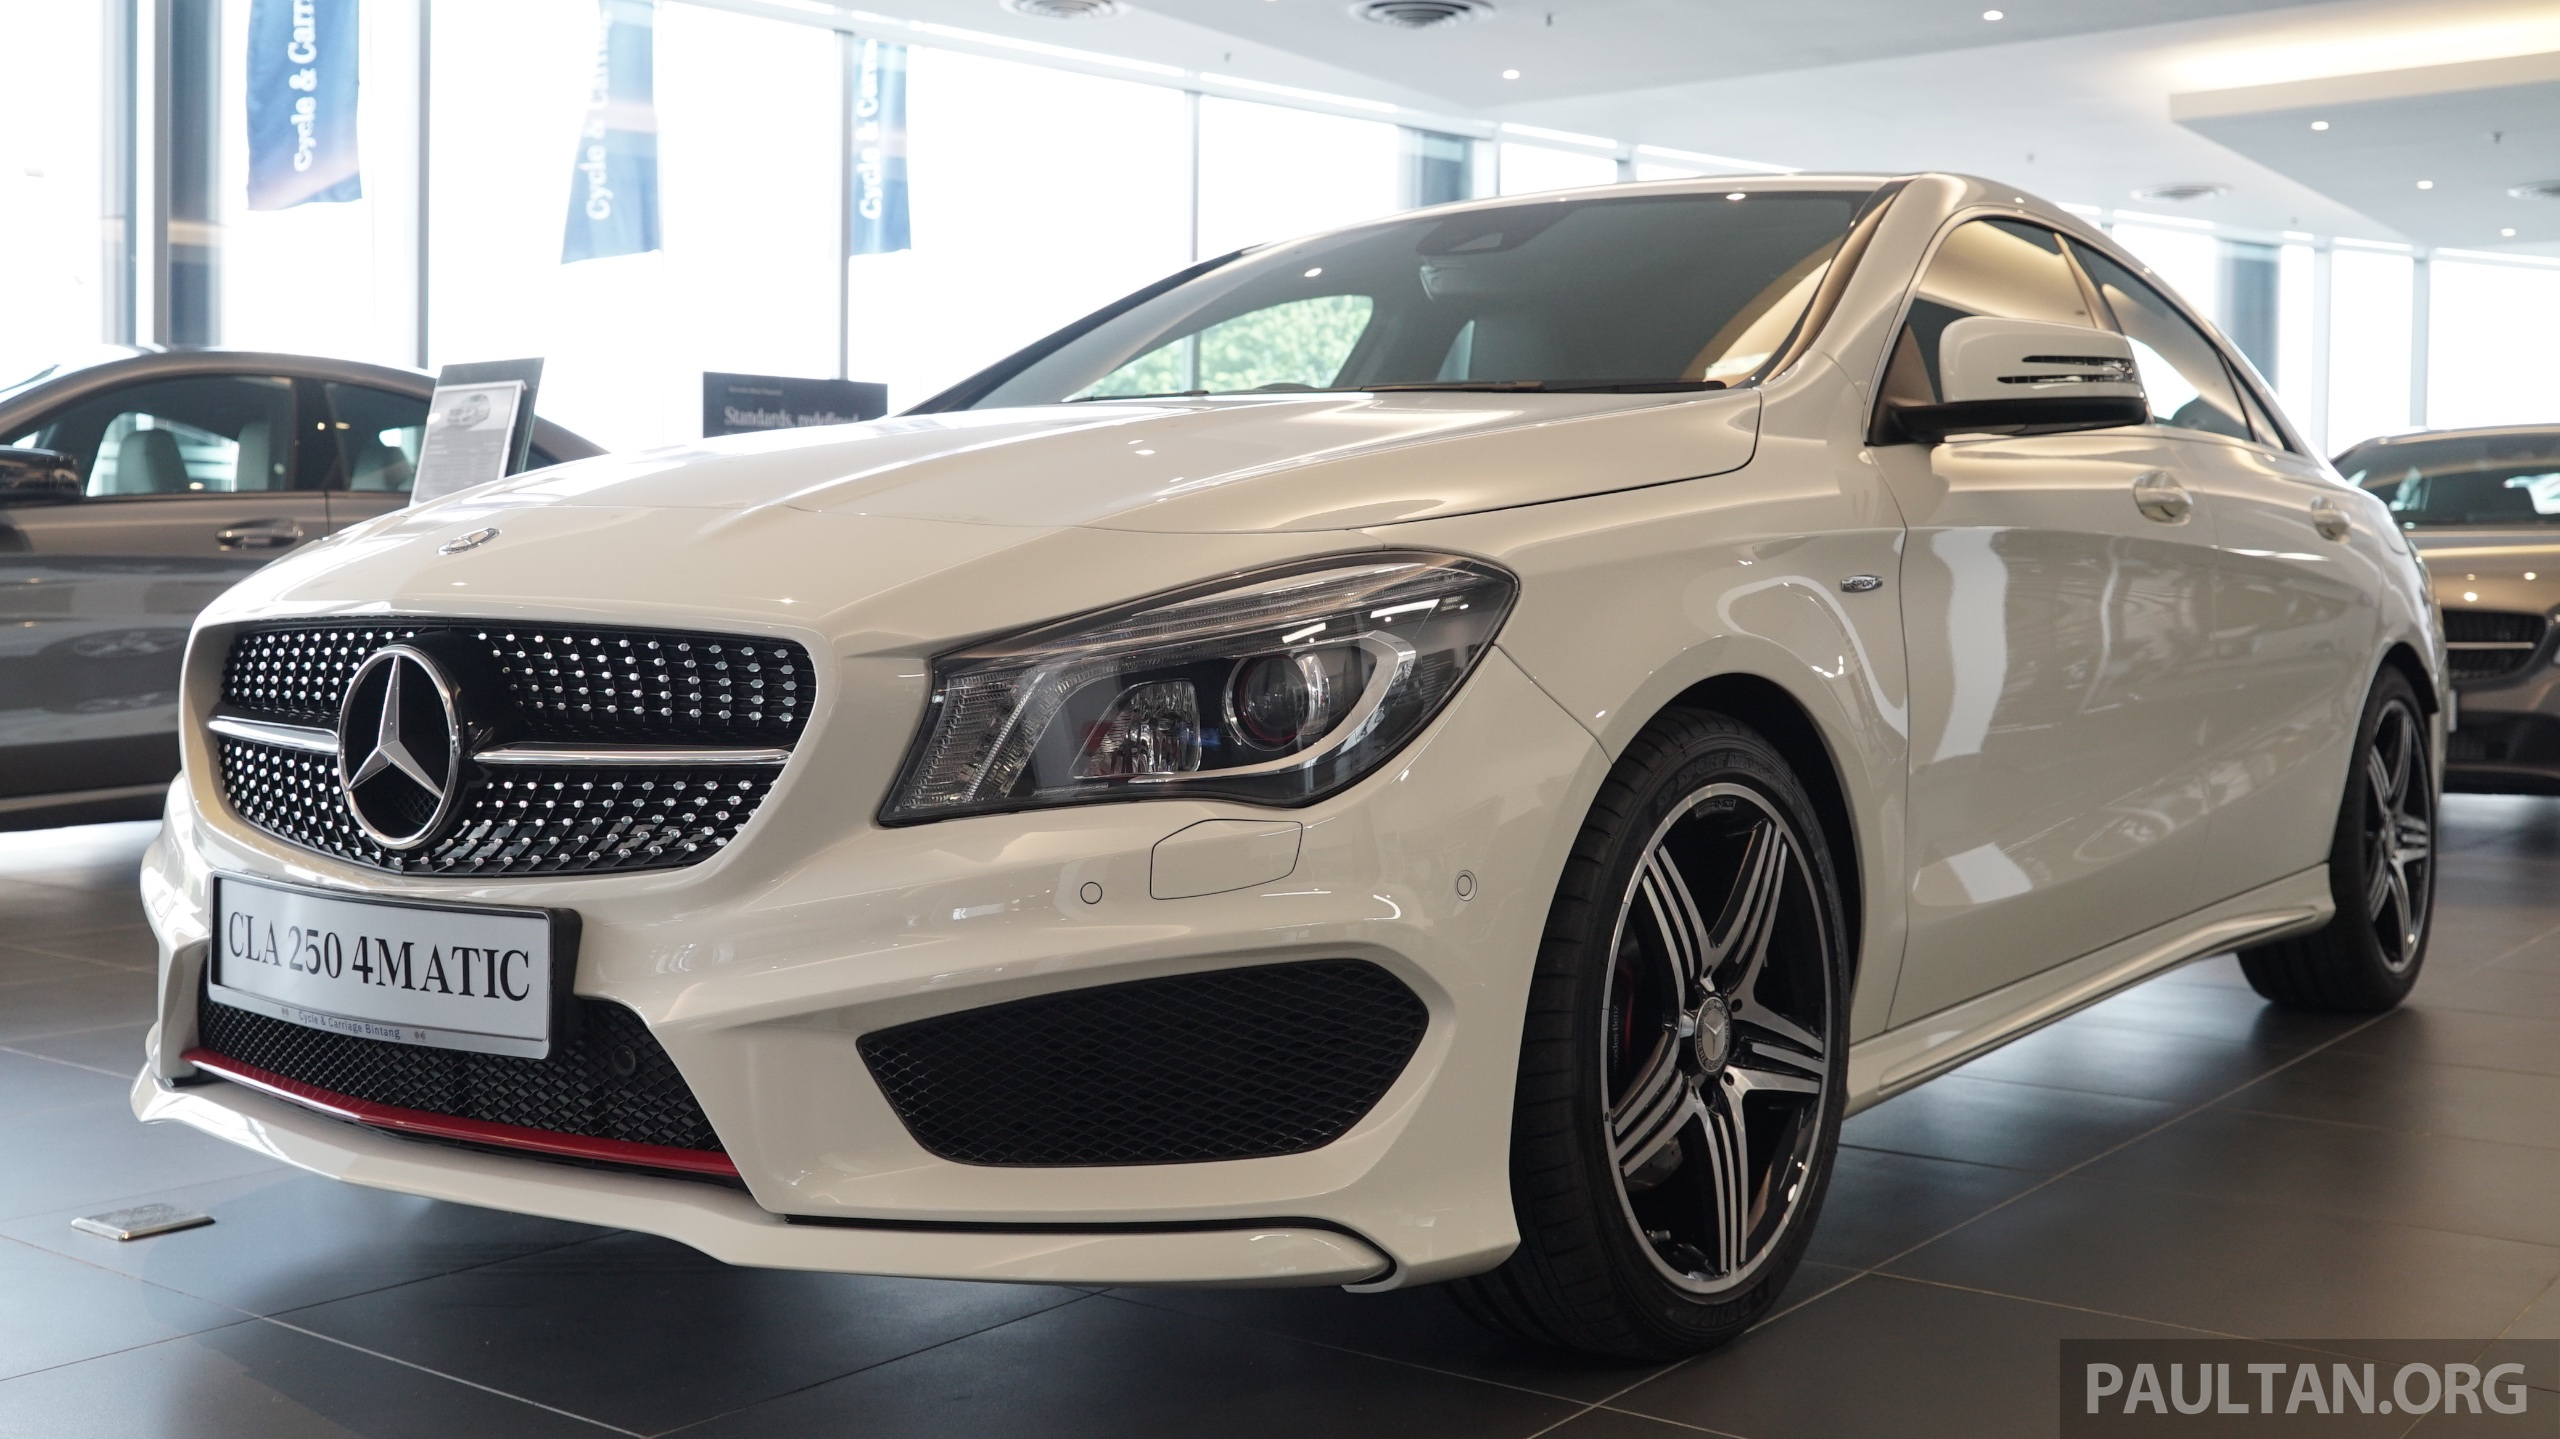 Mercedes Benz Cla >> Mercedes-Benz CLA250 Sport 4Matic in M'sia, RM269k Image ...